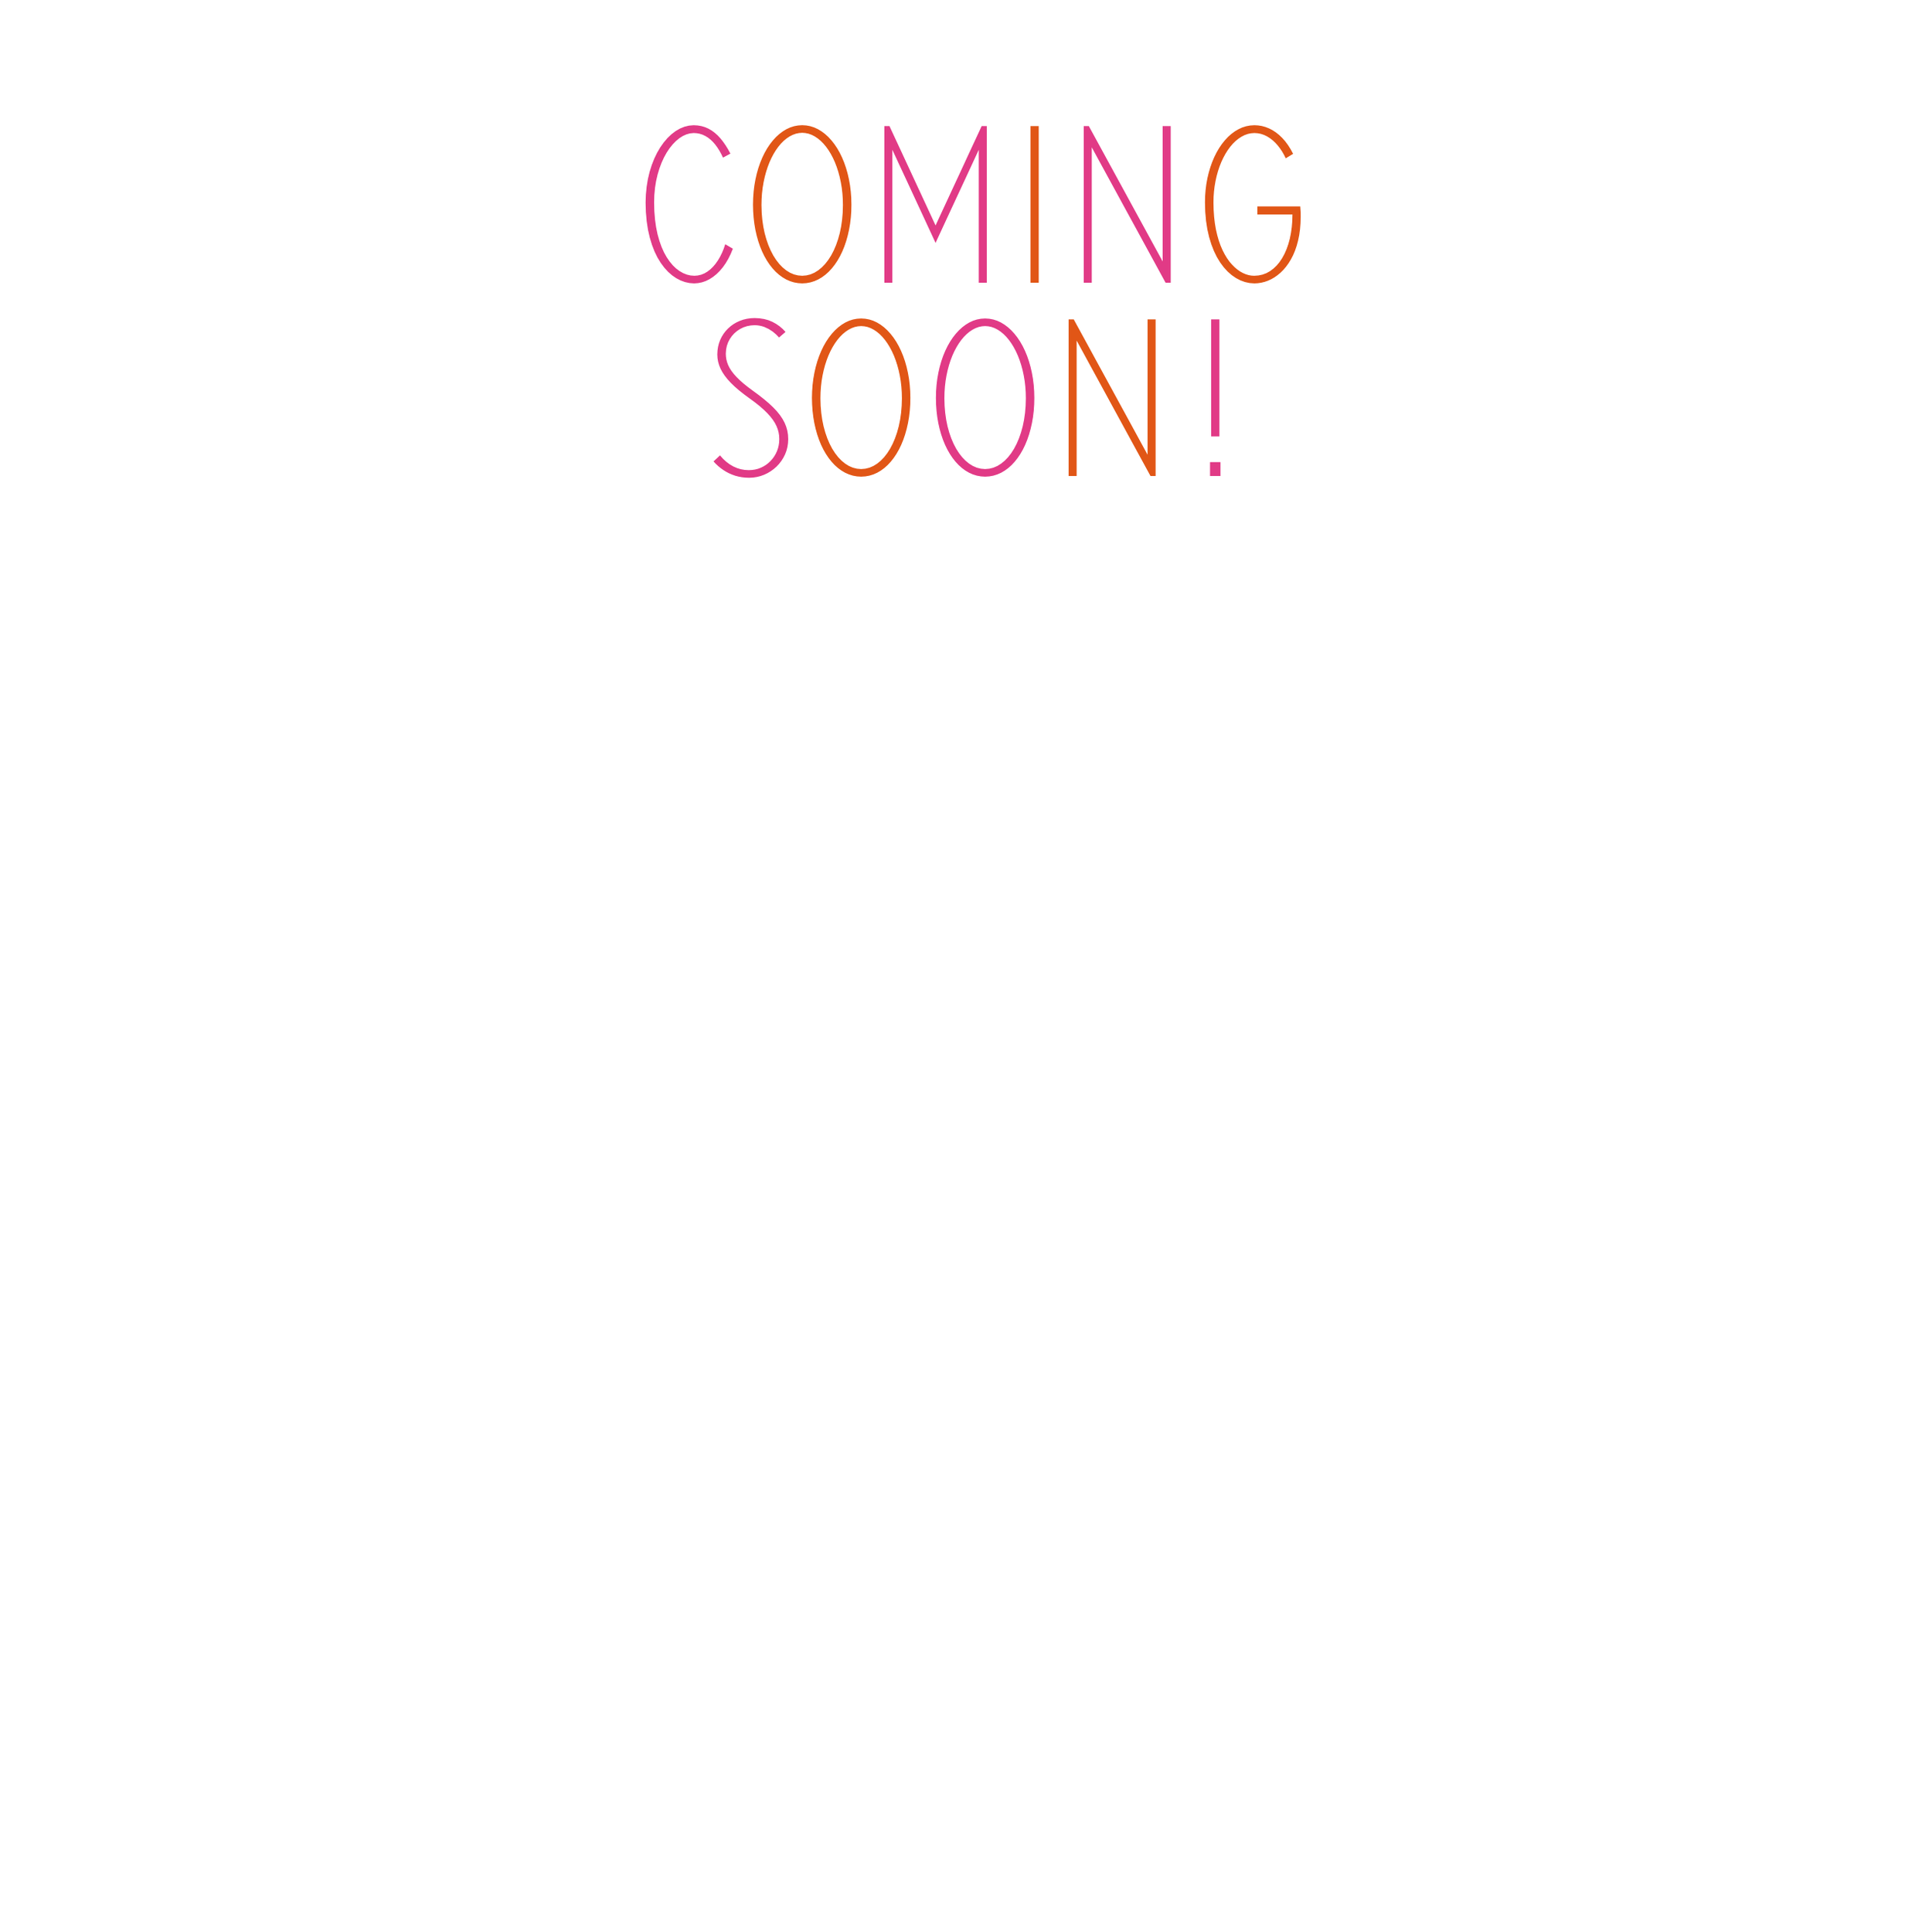 coming soon lg.png